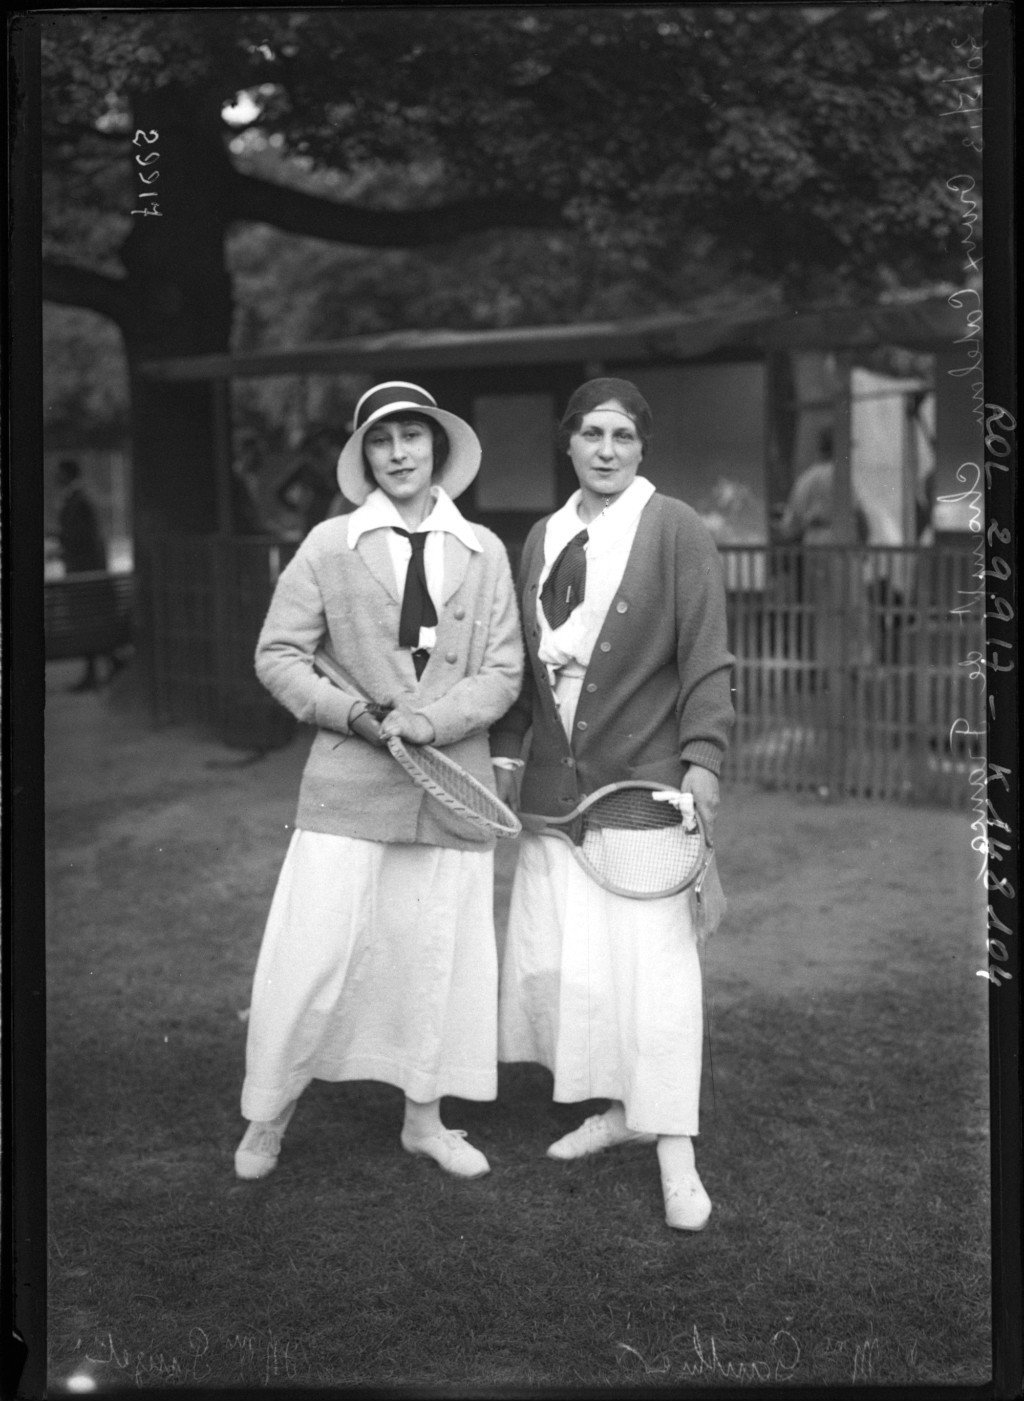 Mme Gautiera and Mme Pujet at France tennis championships, Croix-Catelan, 1913, Agence Rol, Bibliothèque Nationale de France, Public Domain Mark